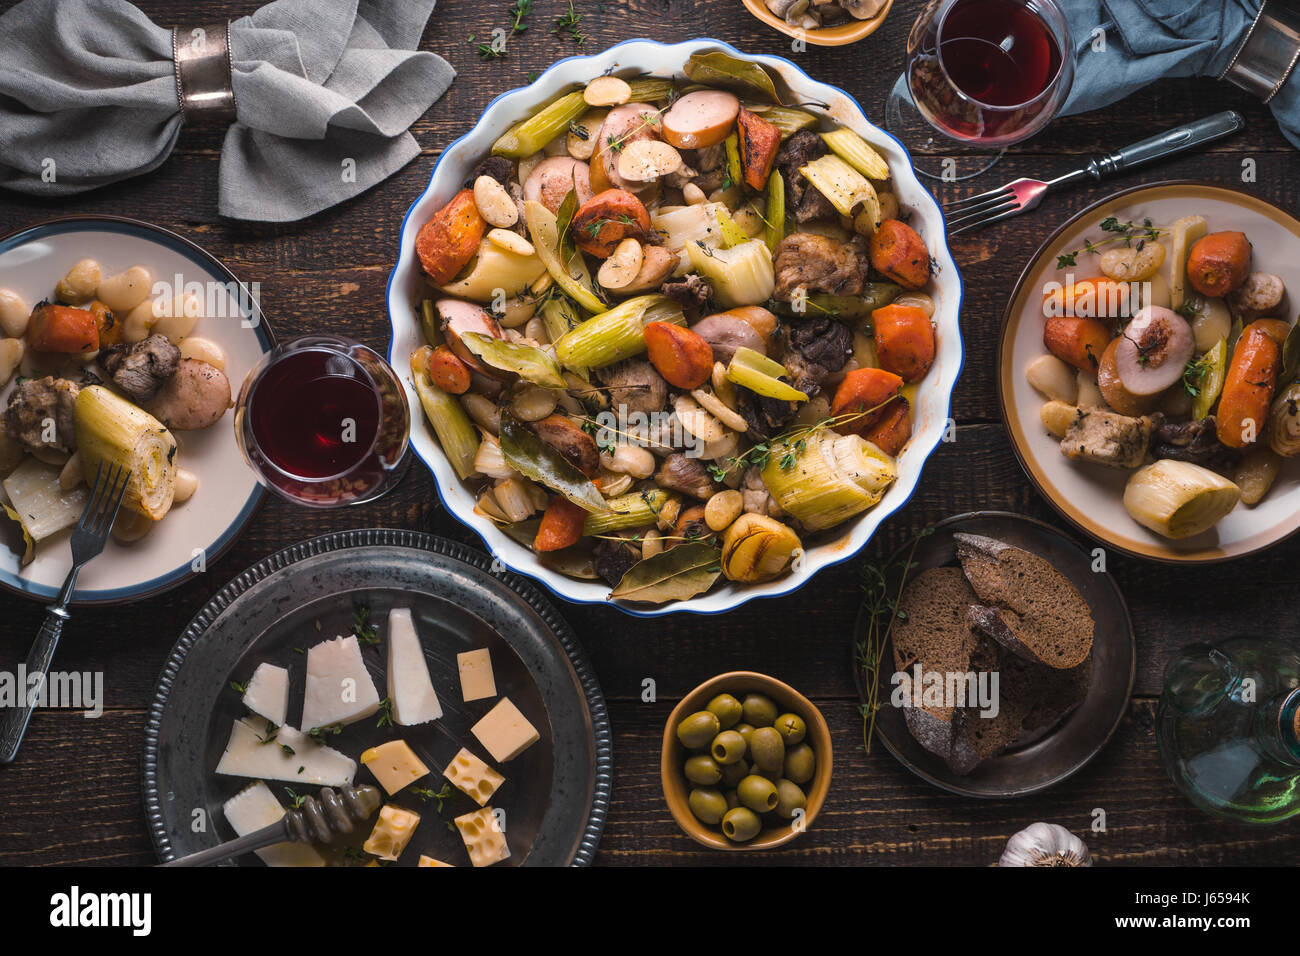 Kasul, cheese, wine, vegetables on the table closeup Stock Photo